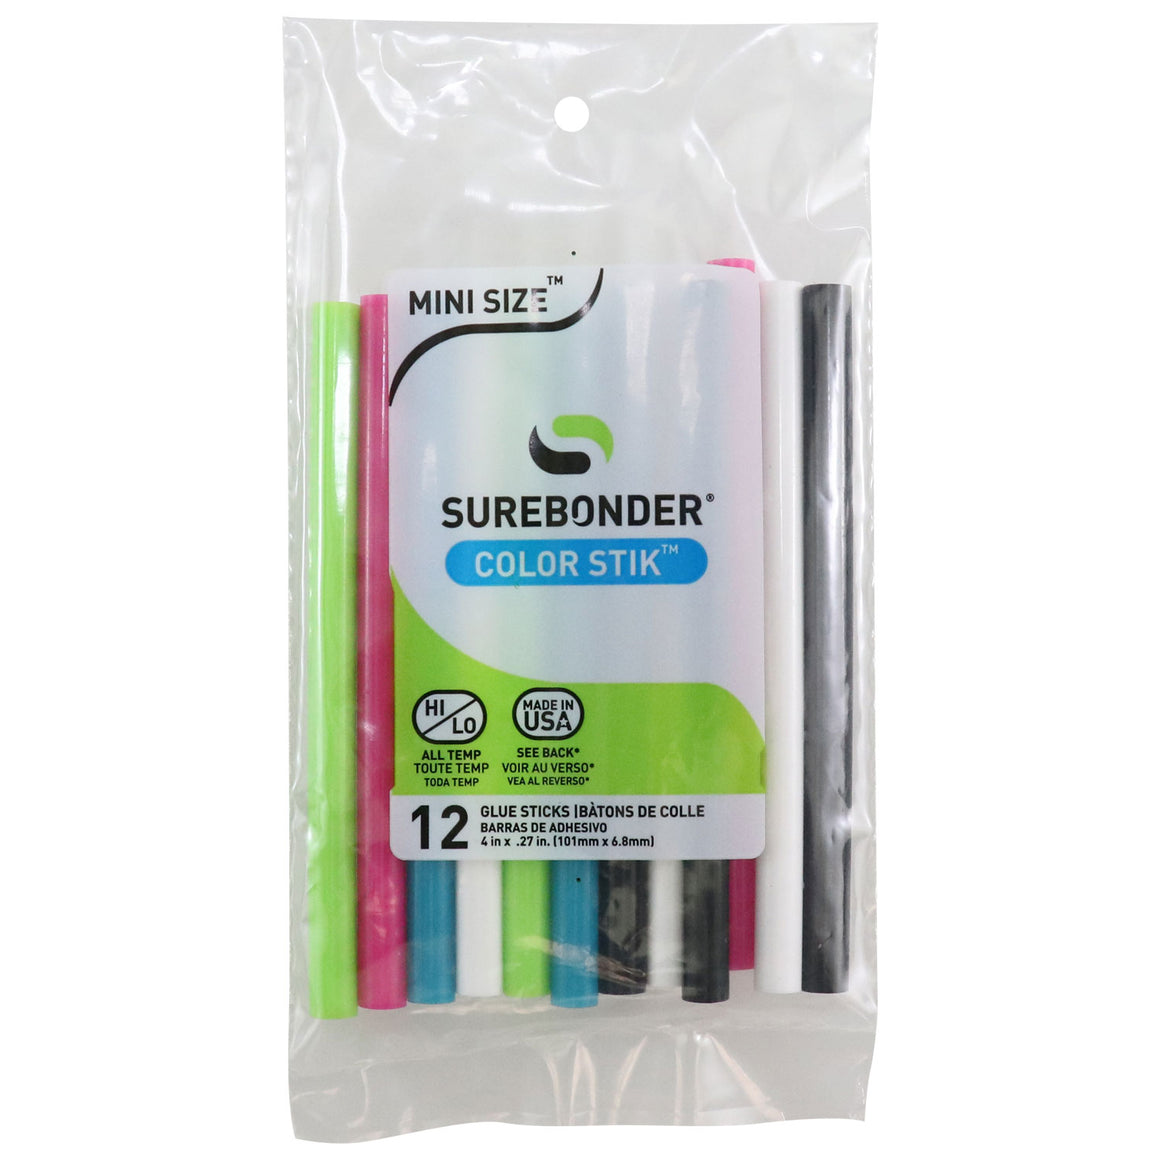 "CO-12V Mini Size 4"" Color Glue Sticks - 12 Pack Variety - Surebonder"